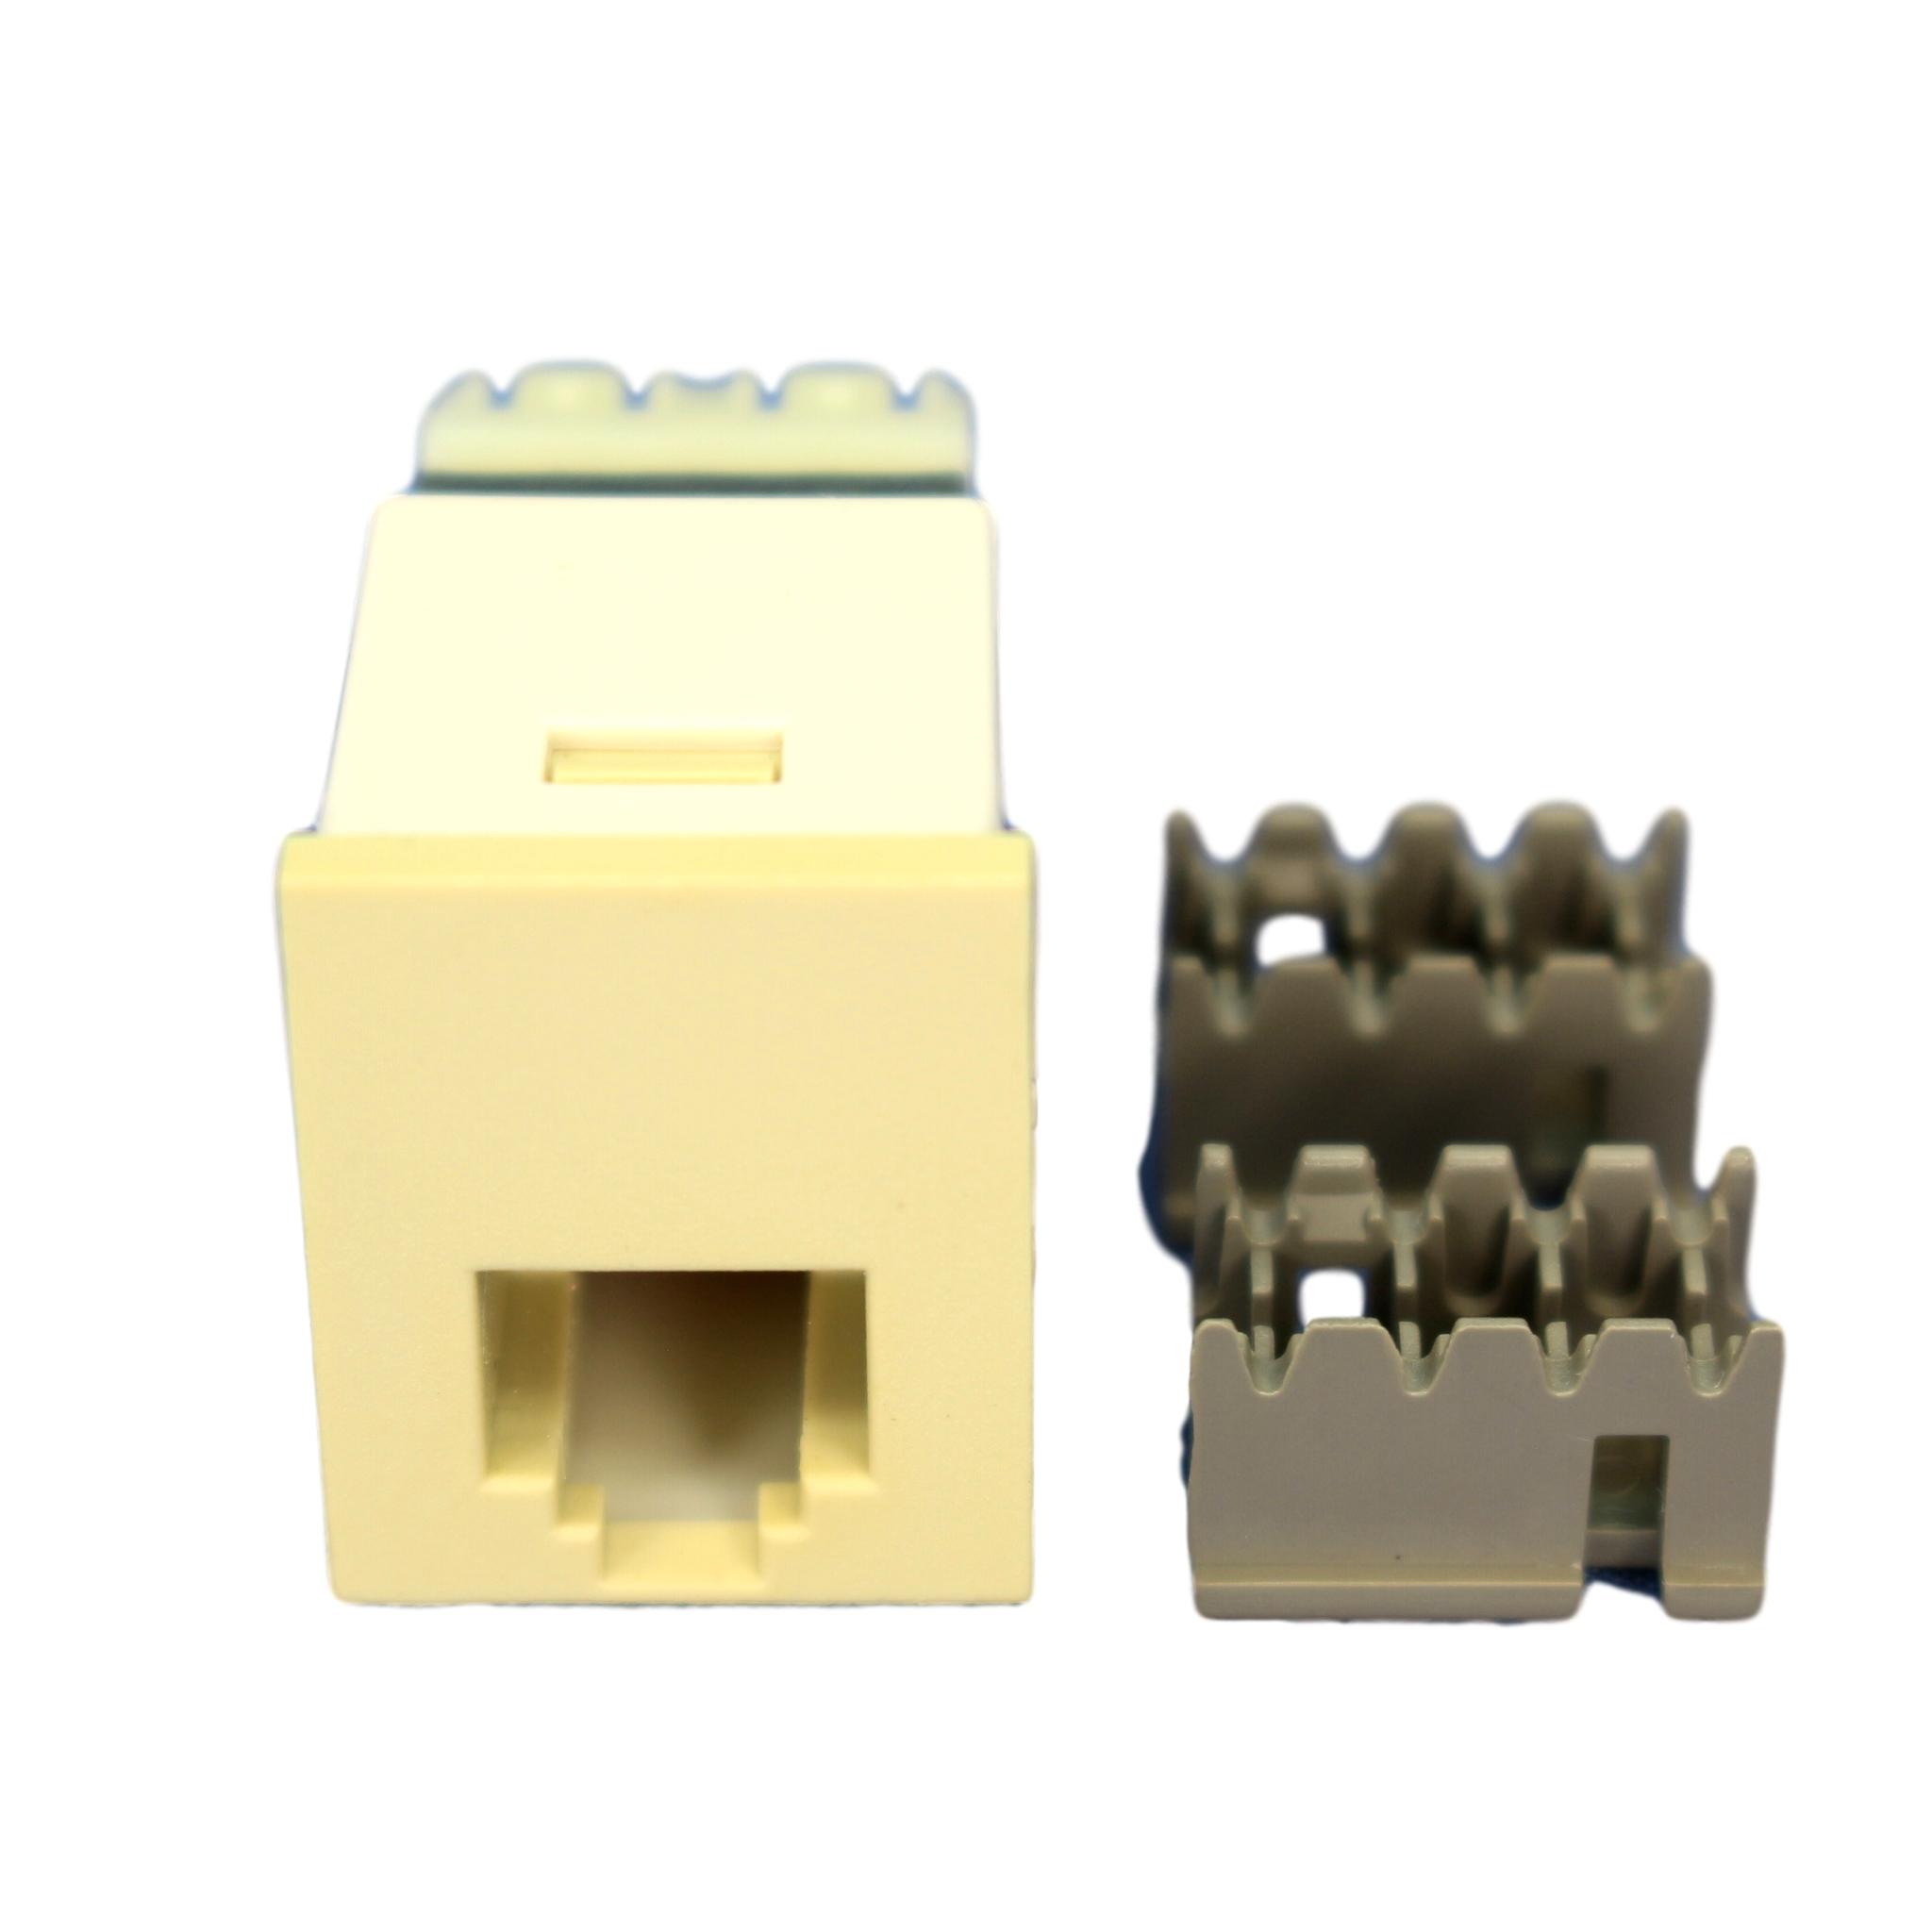 hight resolution of p s ivory smooth 6 wire phone jack rj25c telephone usoc wiring 6p 6c cat3 category 3 s6u i 6 wire phone jack wiring